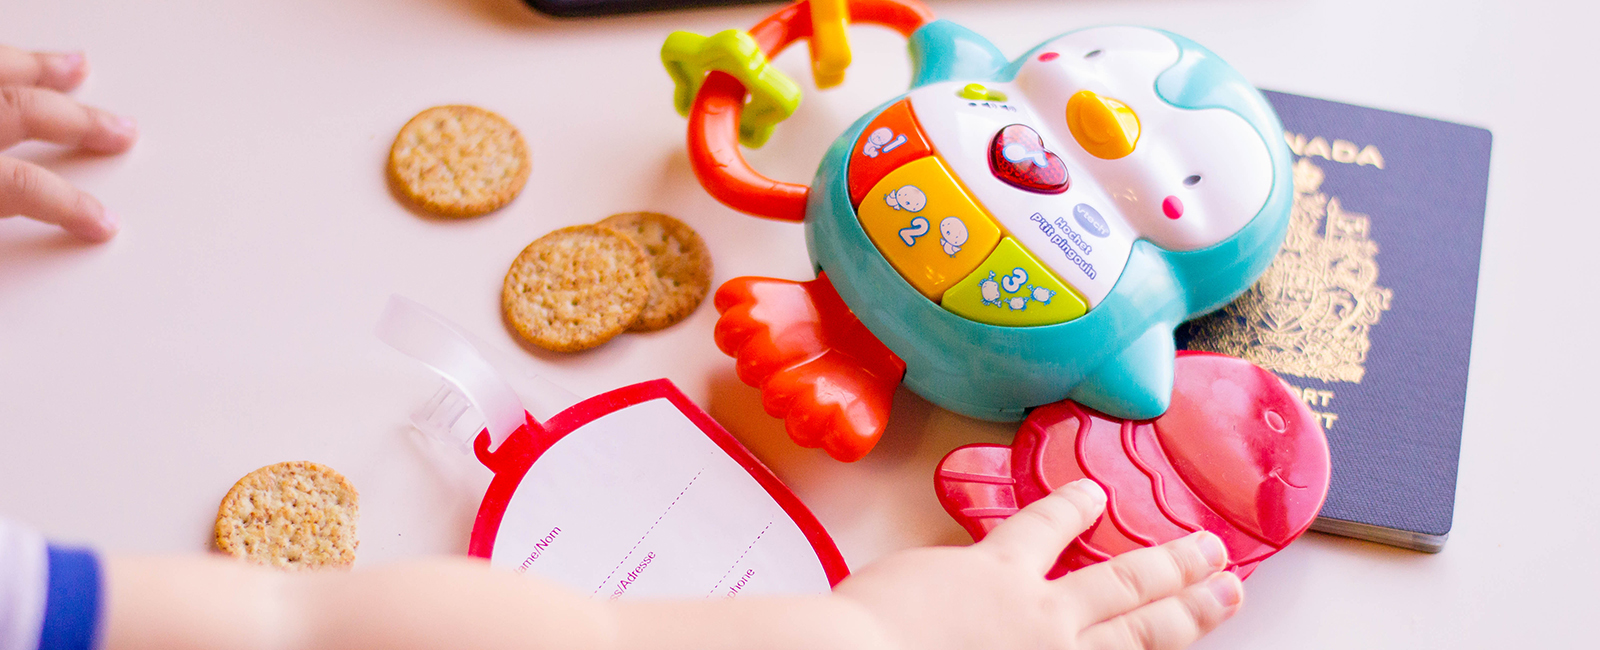 4 Items to Bring when Travelling with Toddlers